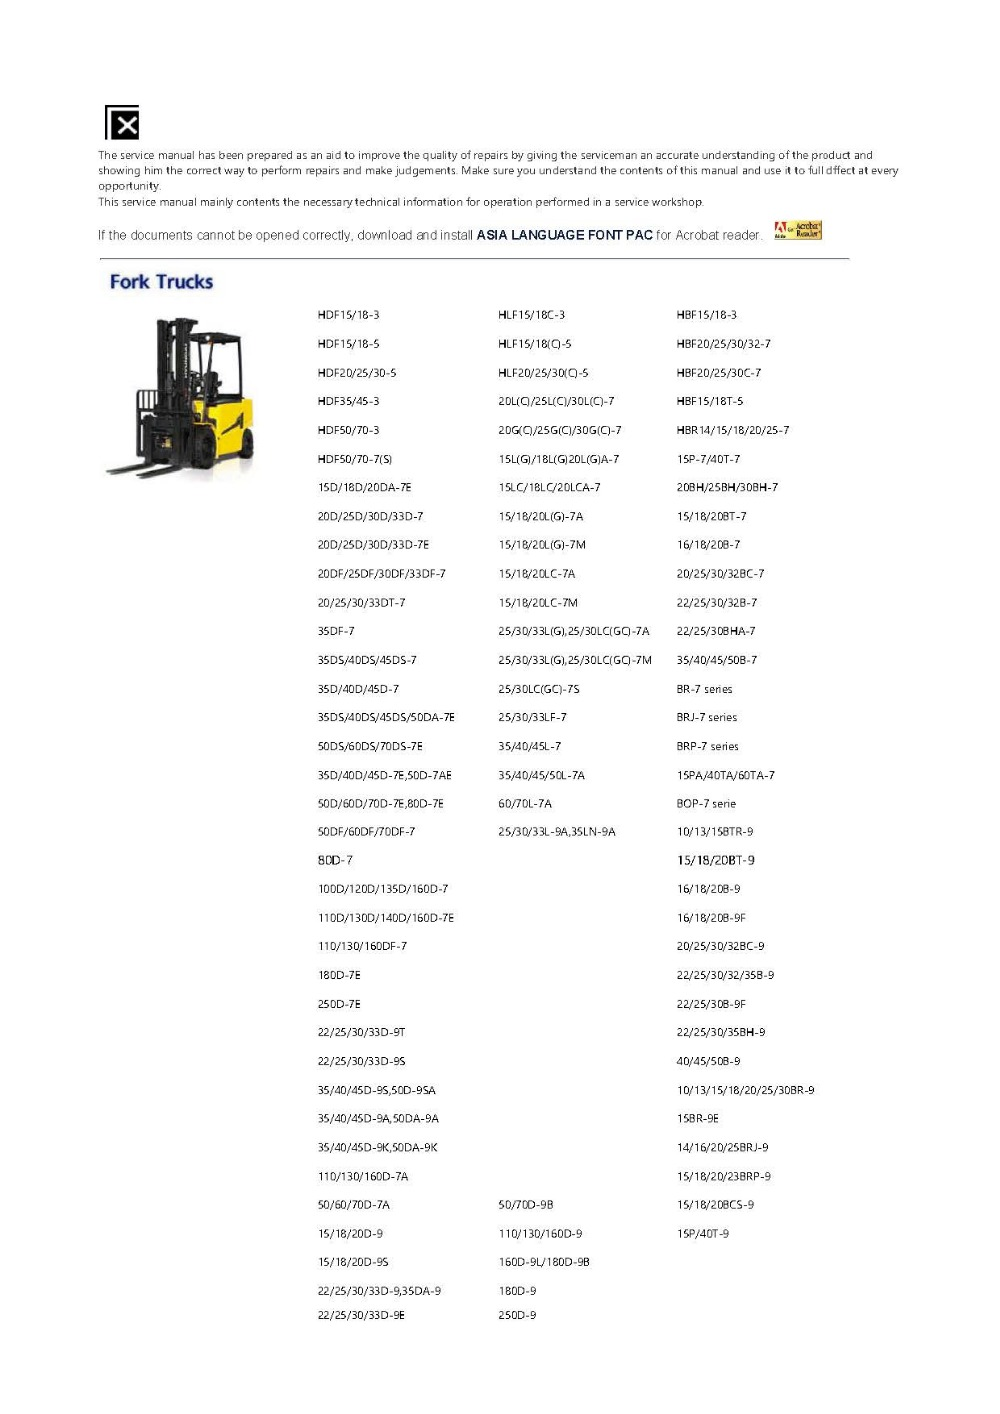 medium resolution of forklift trucks and engine service manuals and workshop manuals for hyundai in software from automobiles